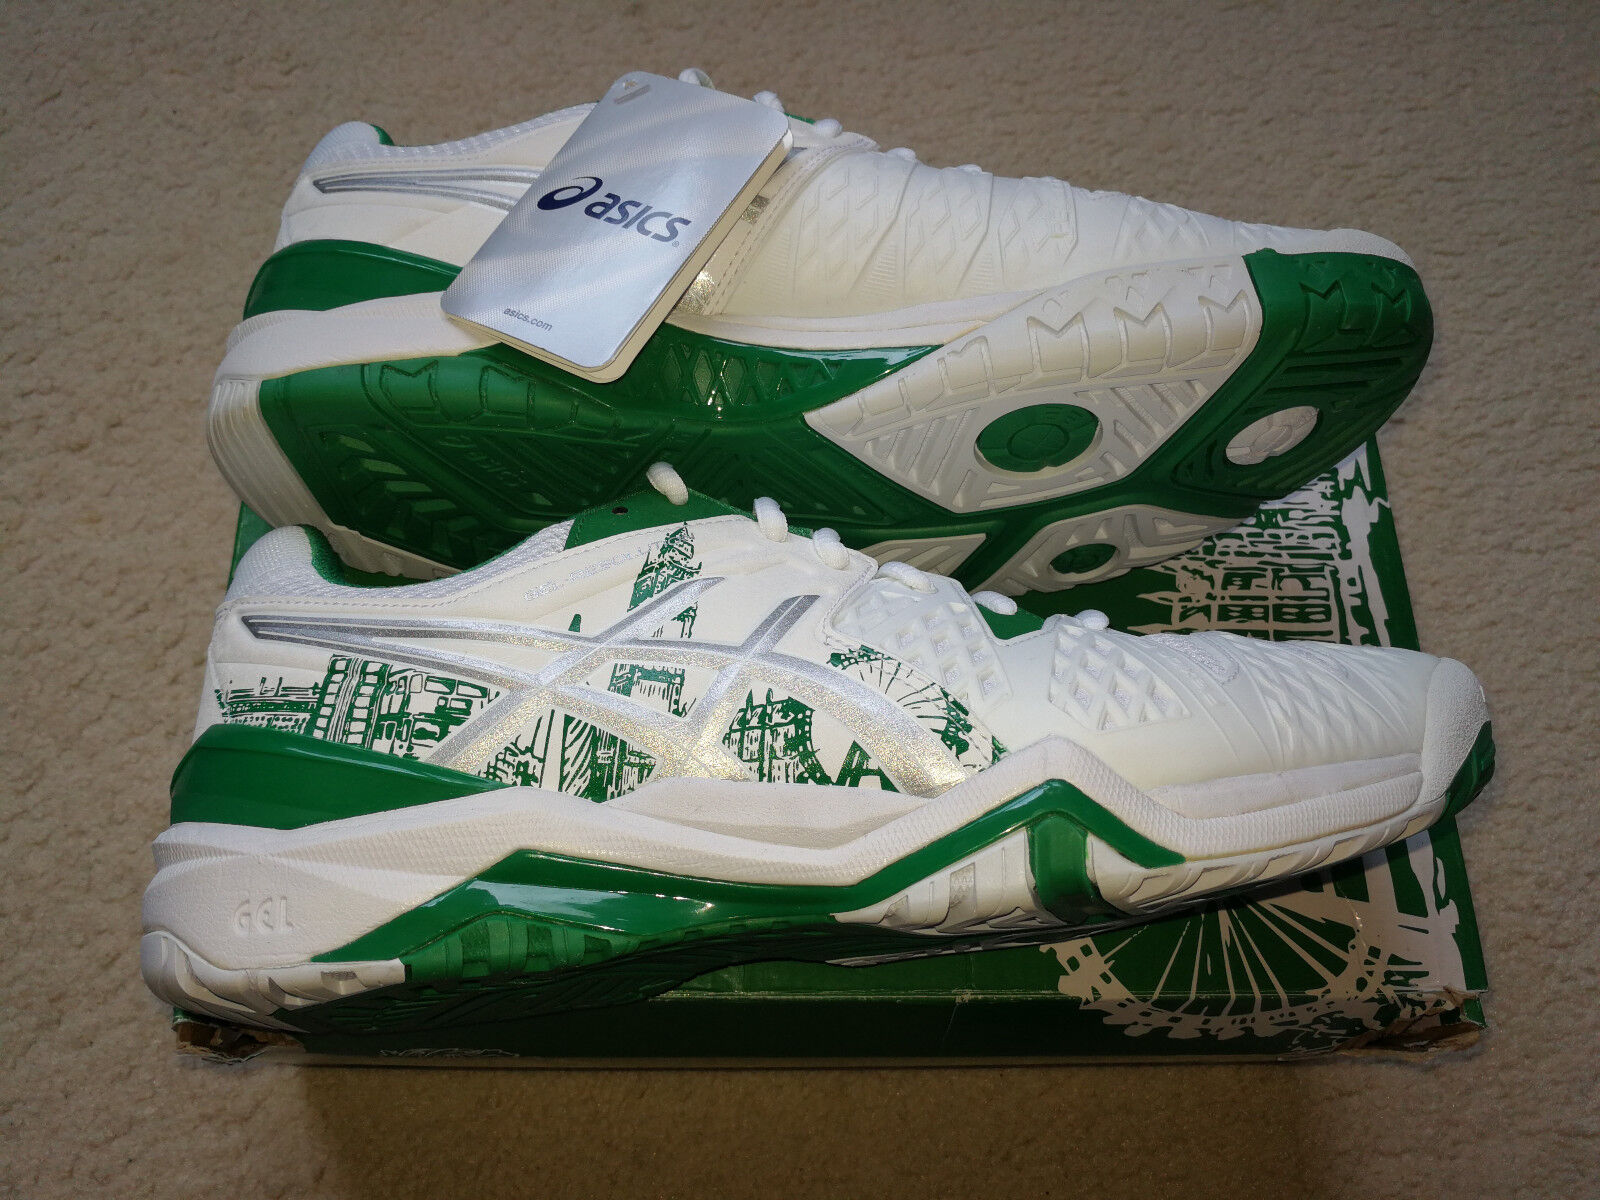 ASICS Gel-Resolution Gel-Resolution Gel-Resolution 6,Limited E. London(Wimbledon),Men's Tennis shoes,Size 9.5 92e7e3